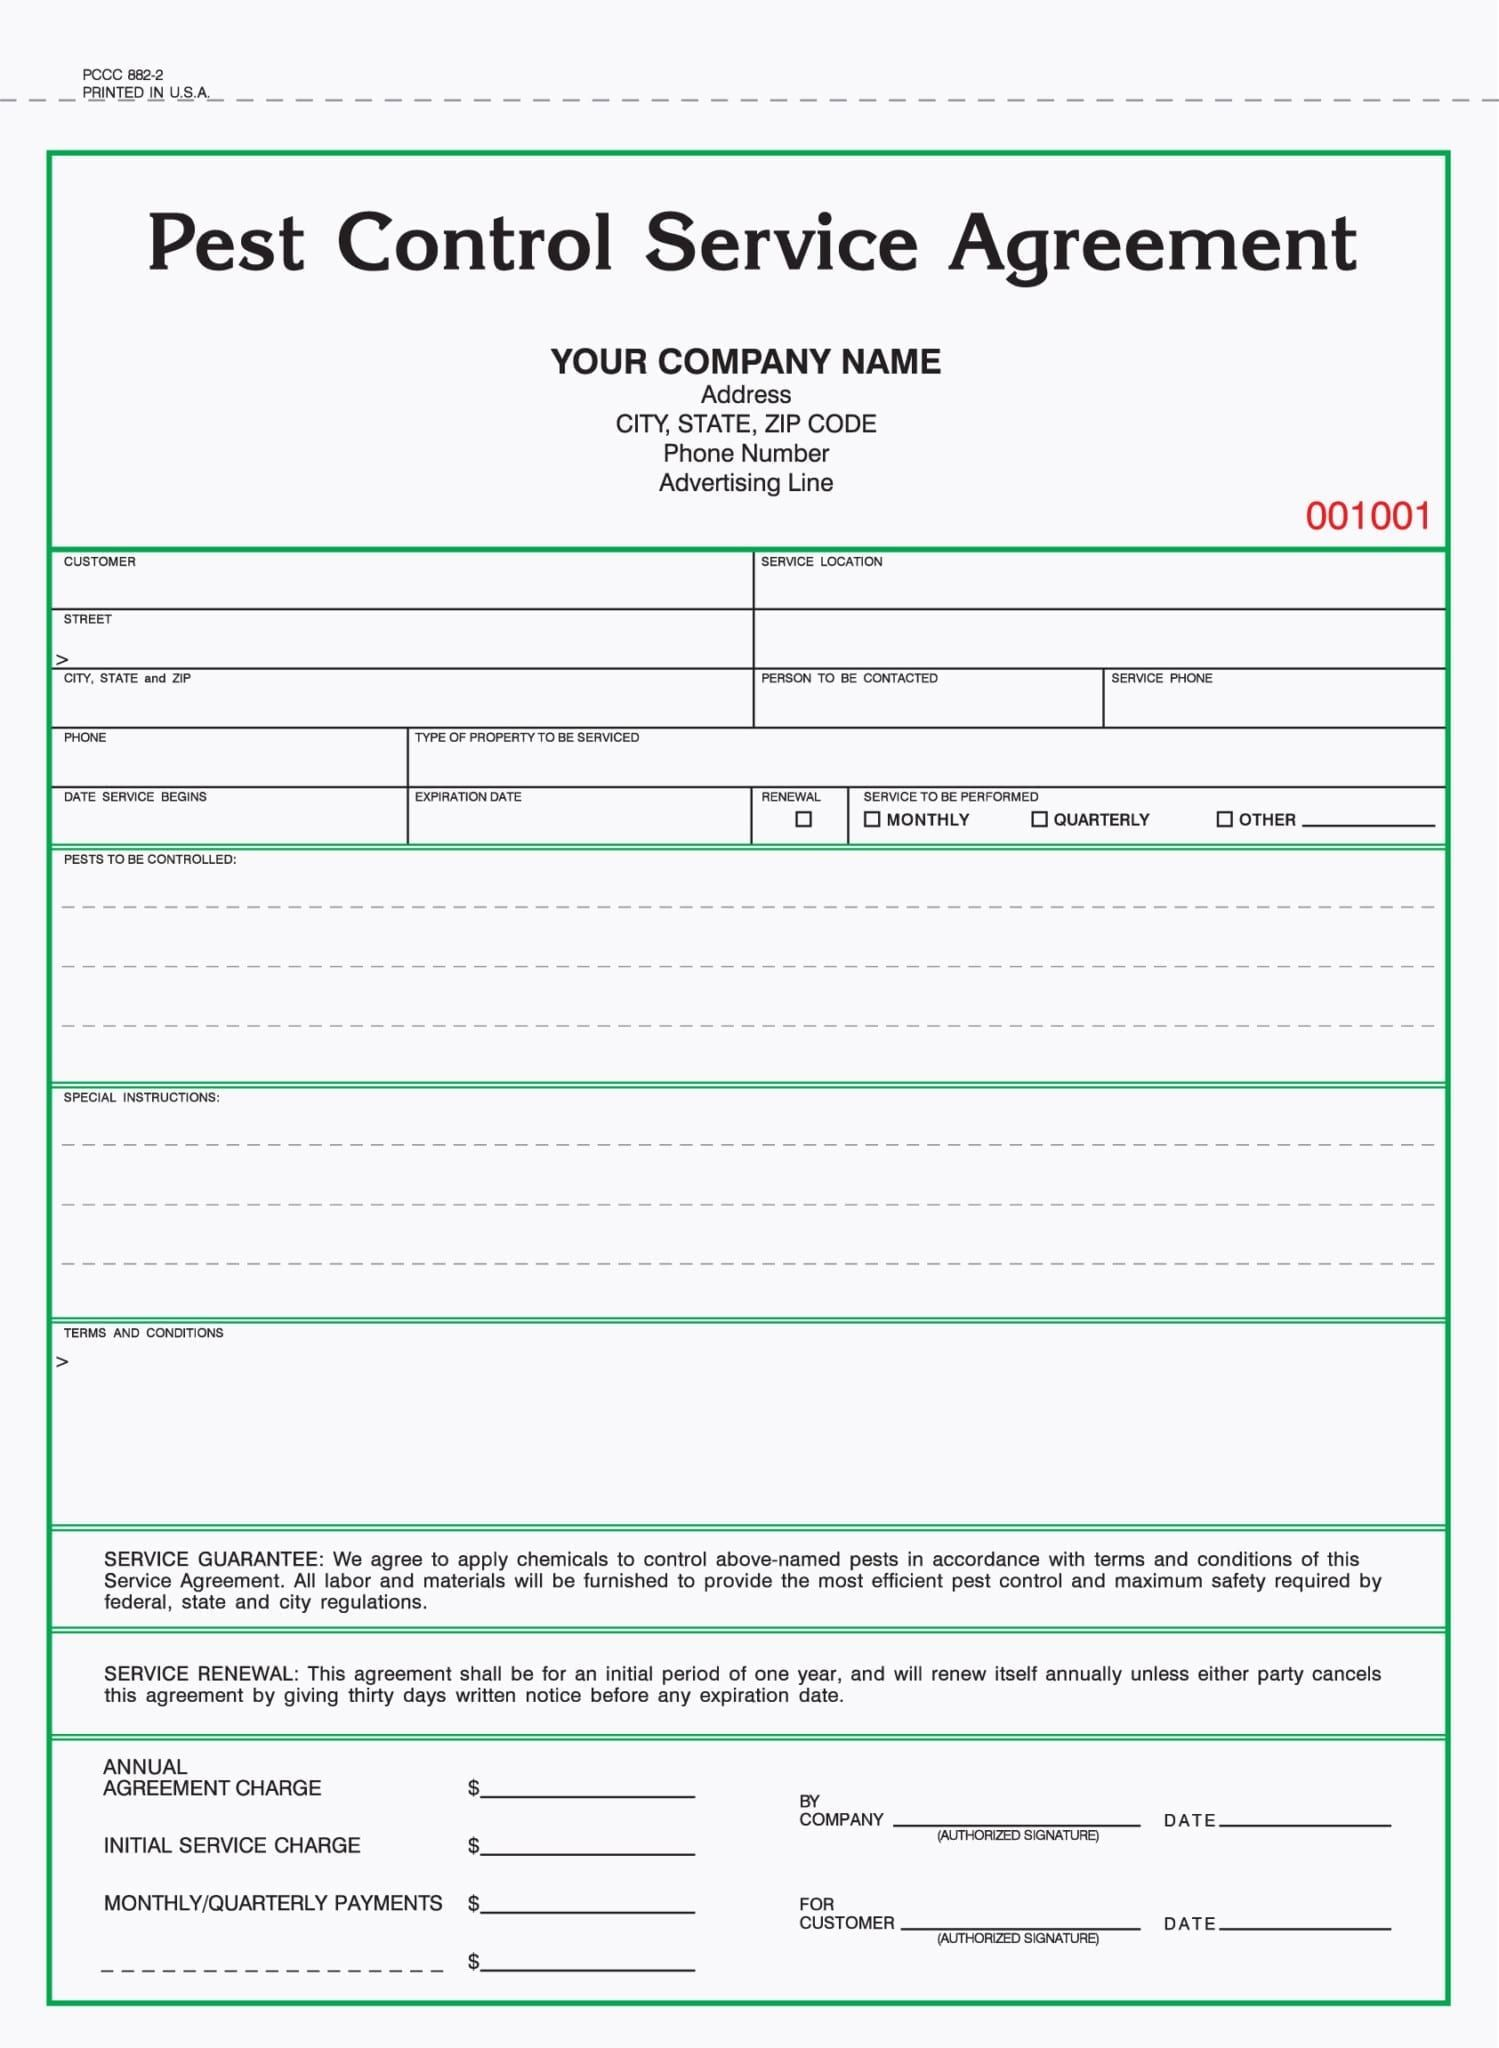 2 Part Pest Control Service Agreement Forms With Images Pest